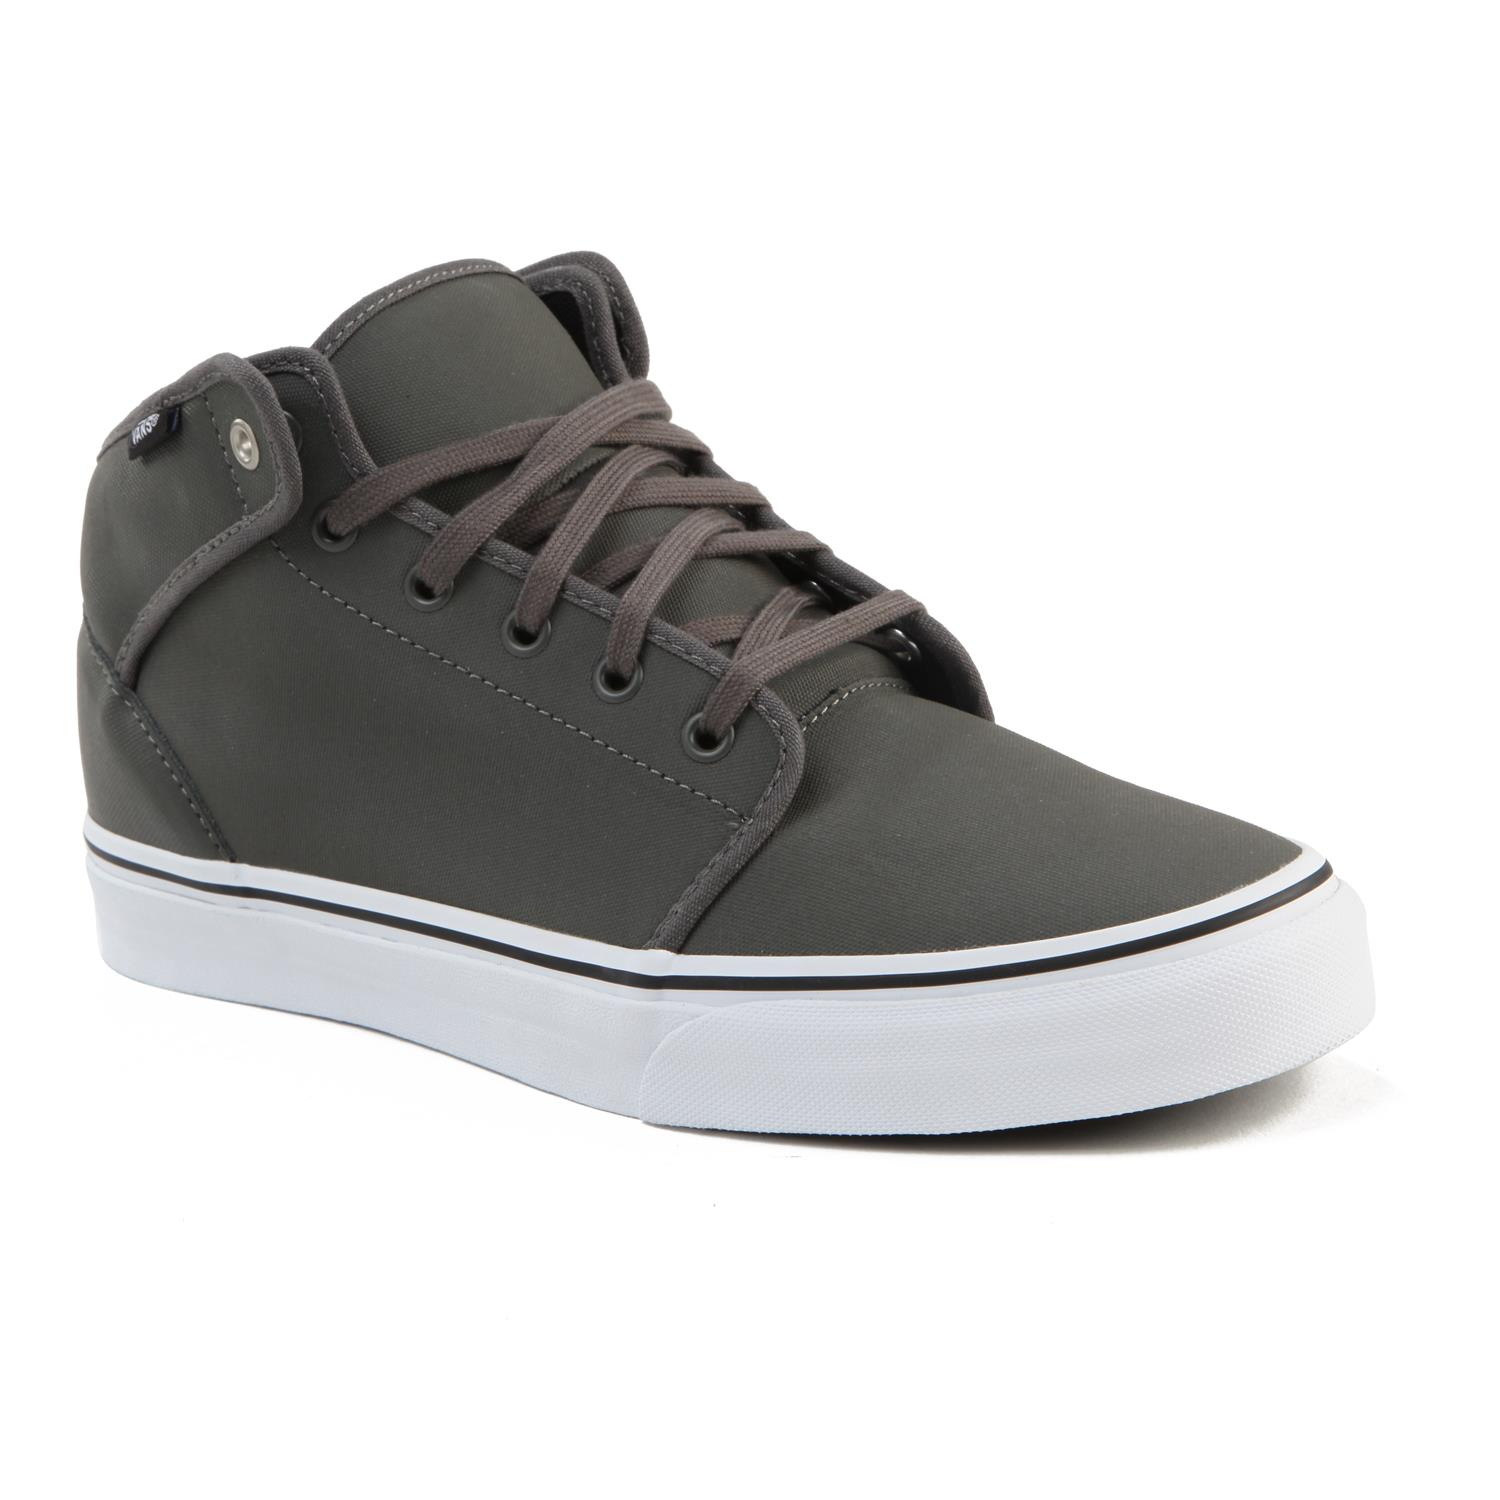 "Search Results for ""Vans Shoes Outlet Store Locations ..."